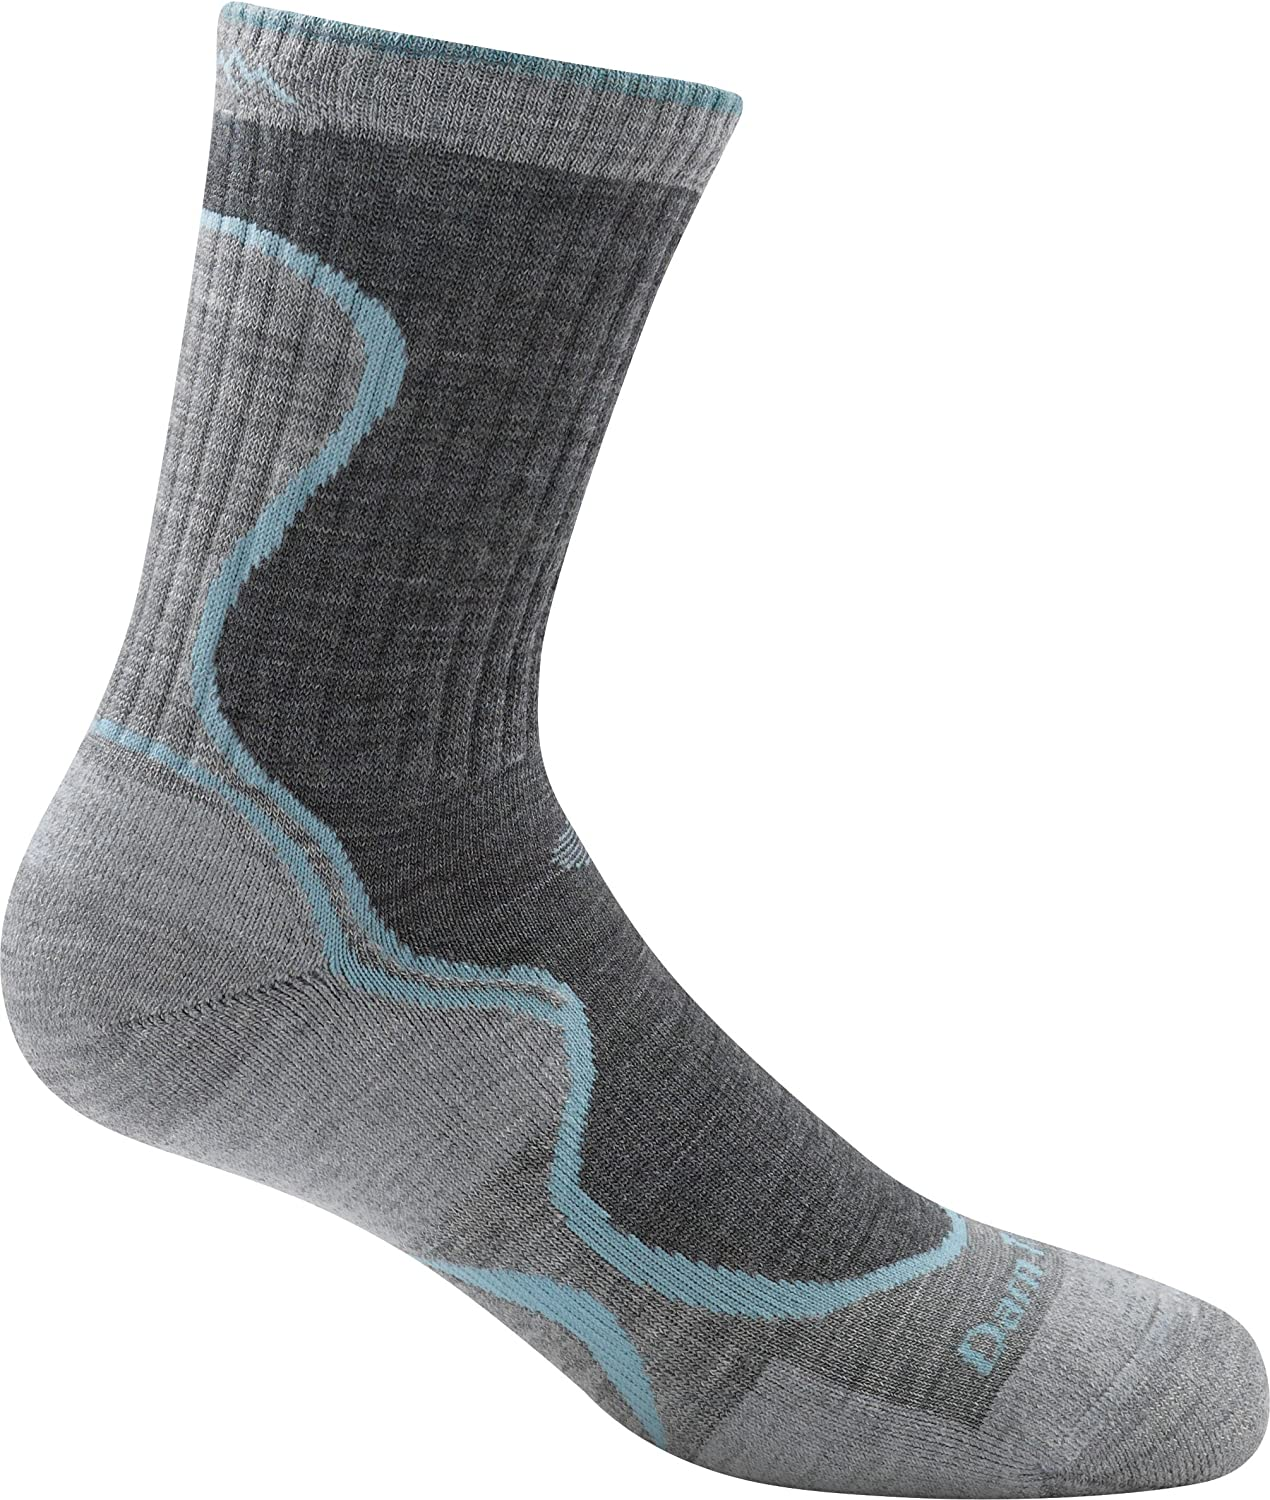 Darn Tough Vermont Junior Girls Light Hiker Micro Crew Light Cushion Socks